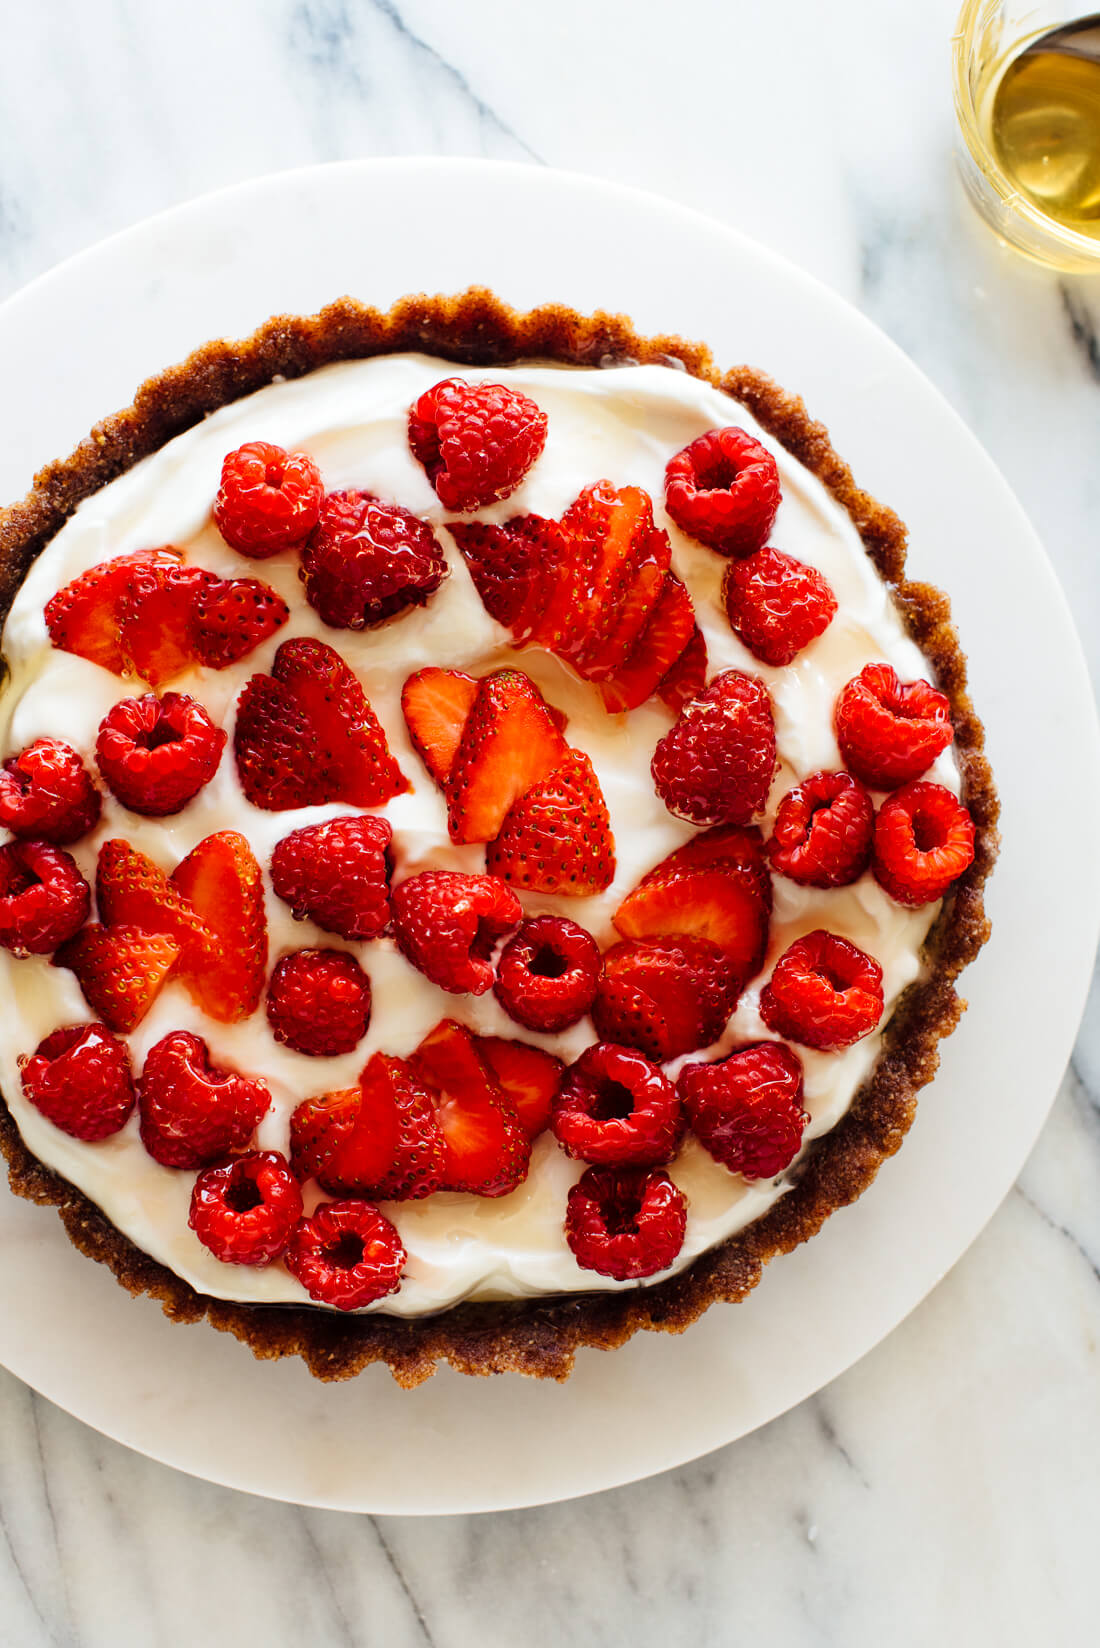 healthy greek yogurt tart topped with raspberries and strawberries